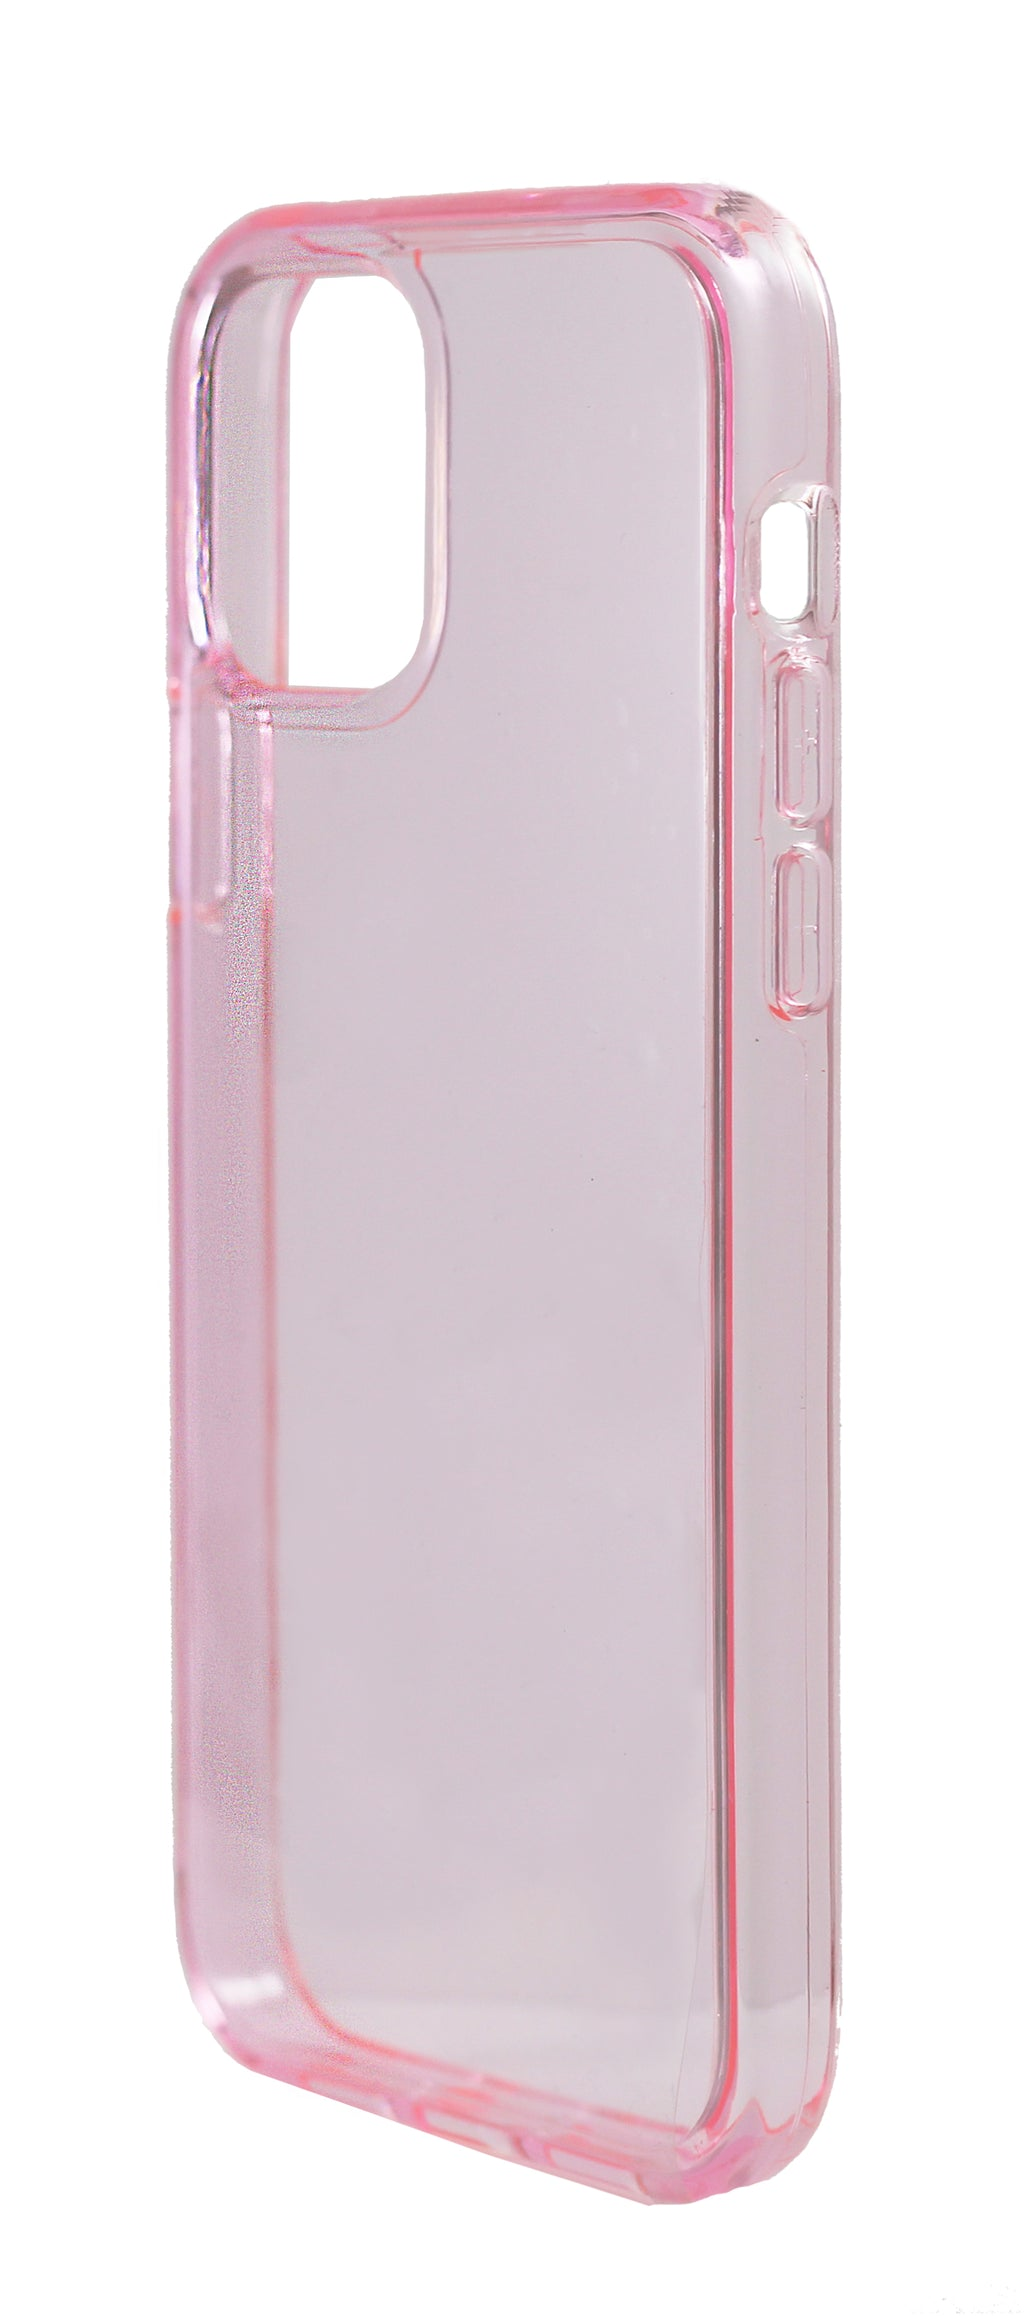 Case Transparente iPhone 12 Mini Rosado